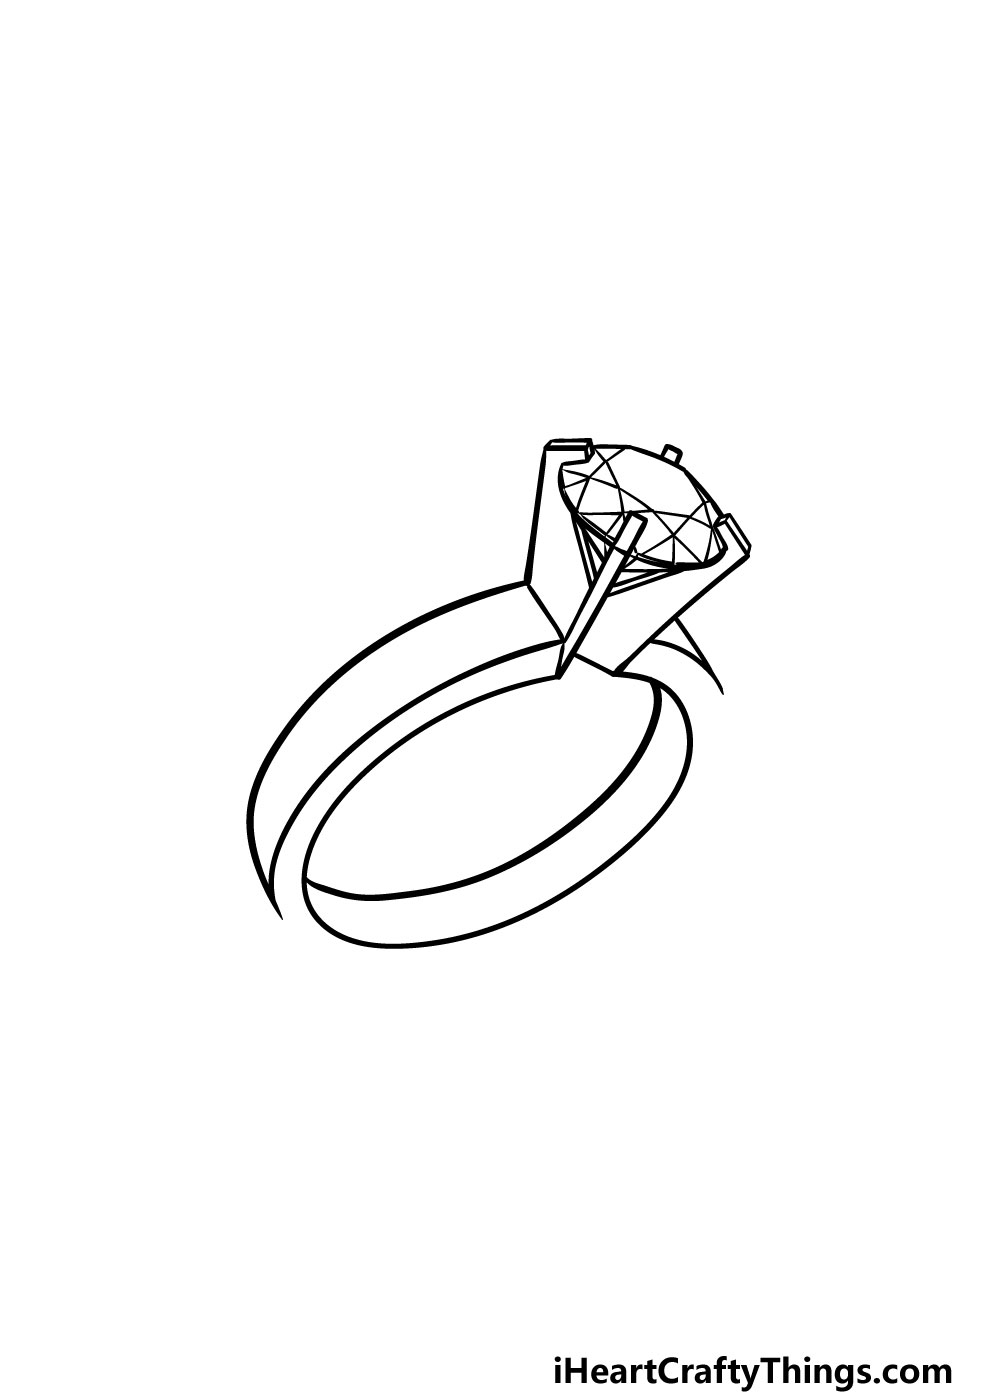 drawing a ring step 4